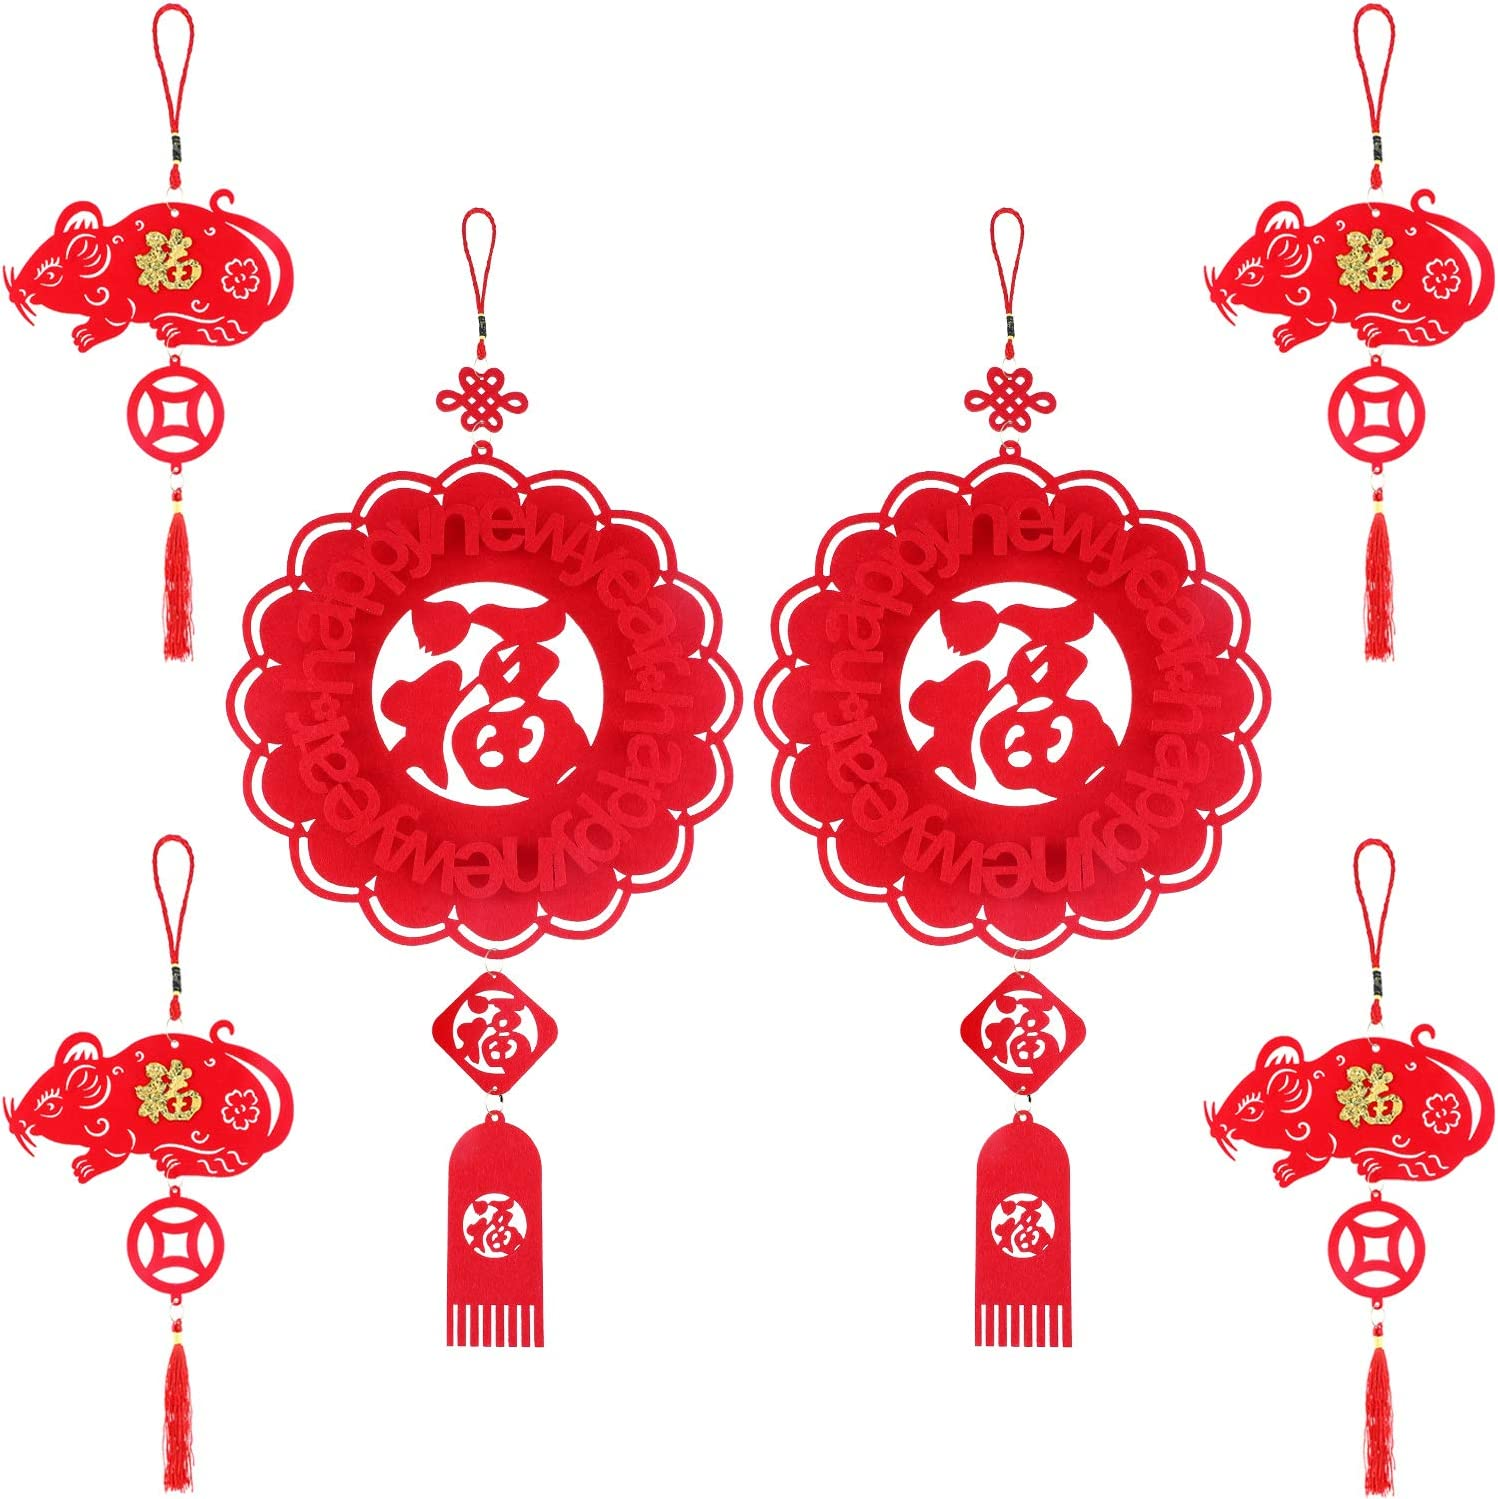 Boao 6 Pieces Chinese New Year Decorations Fu Chinese Spring Festival Home Decor Hanging Chinese Knot Pendant 2020 New Year Rat Pendant Good Luck Ornaments for Home Office Restaurant